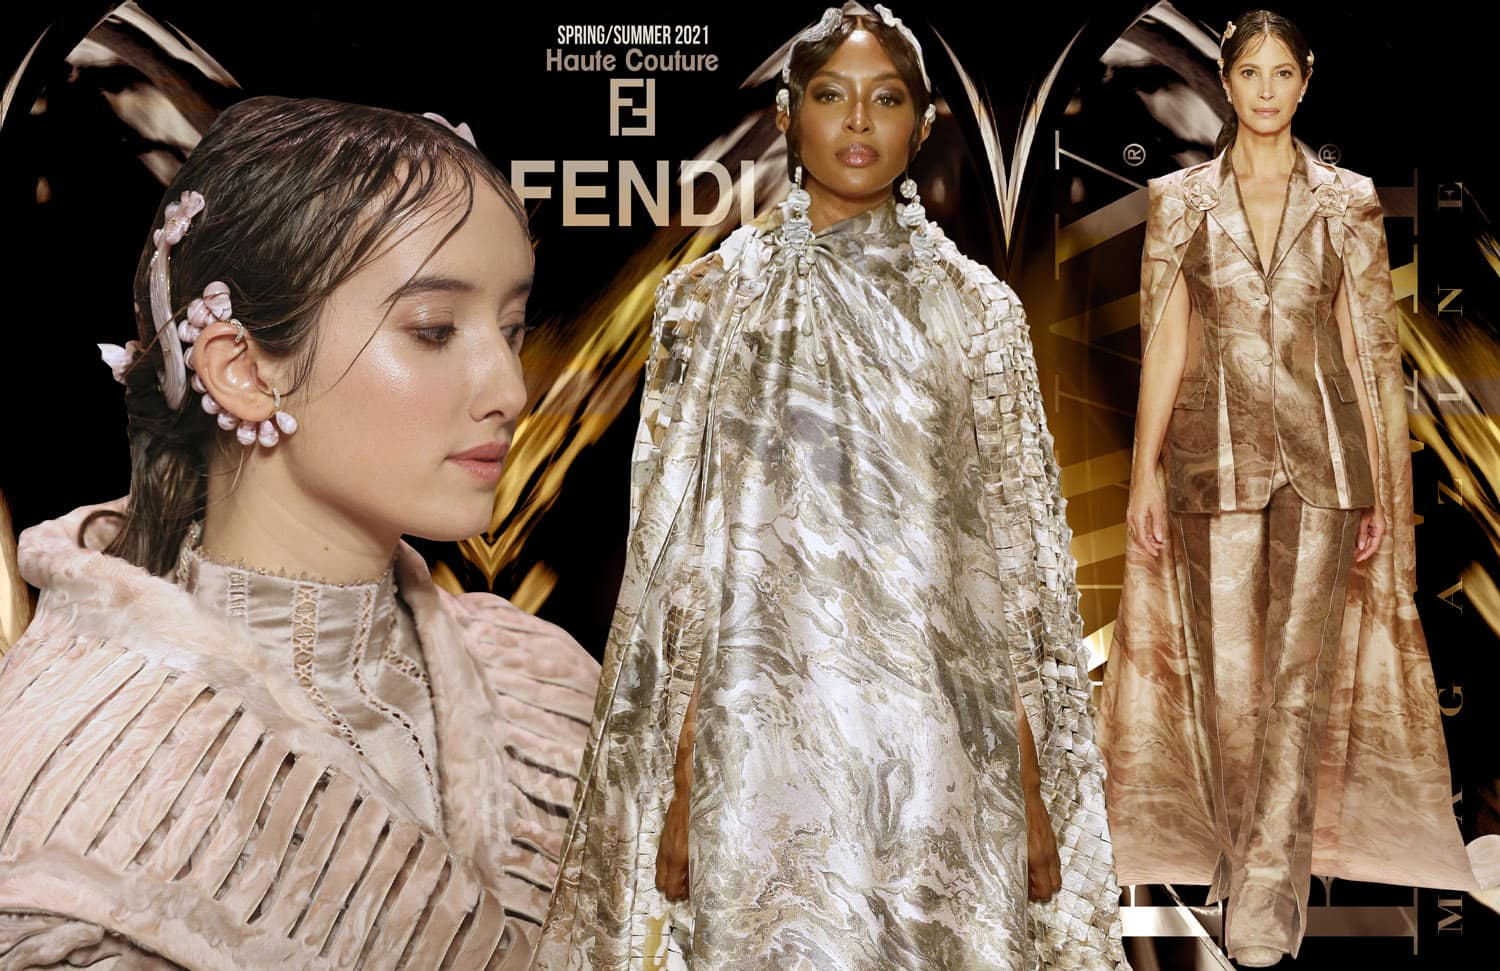 Fendi Haute Couture Spring Summer 2021 by RUNWAY MAGAZINE